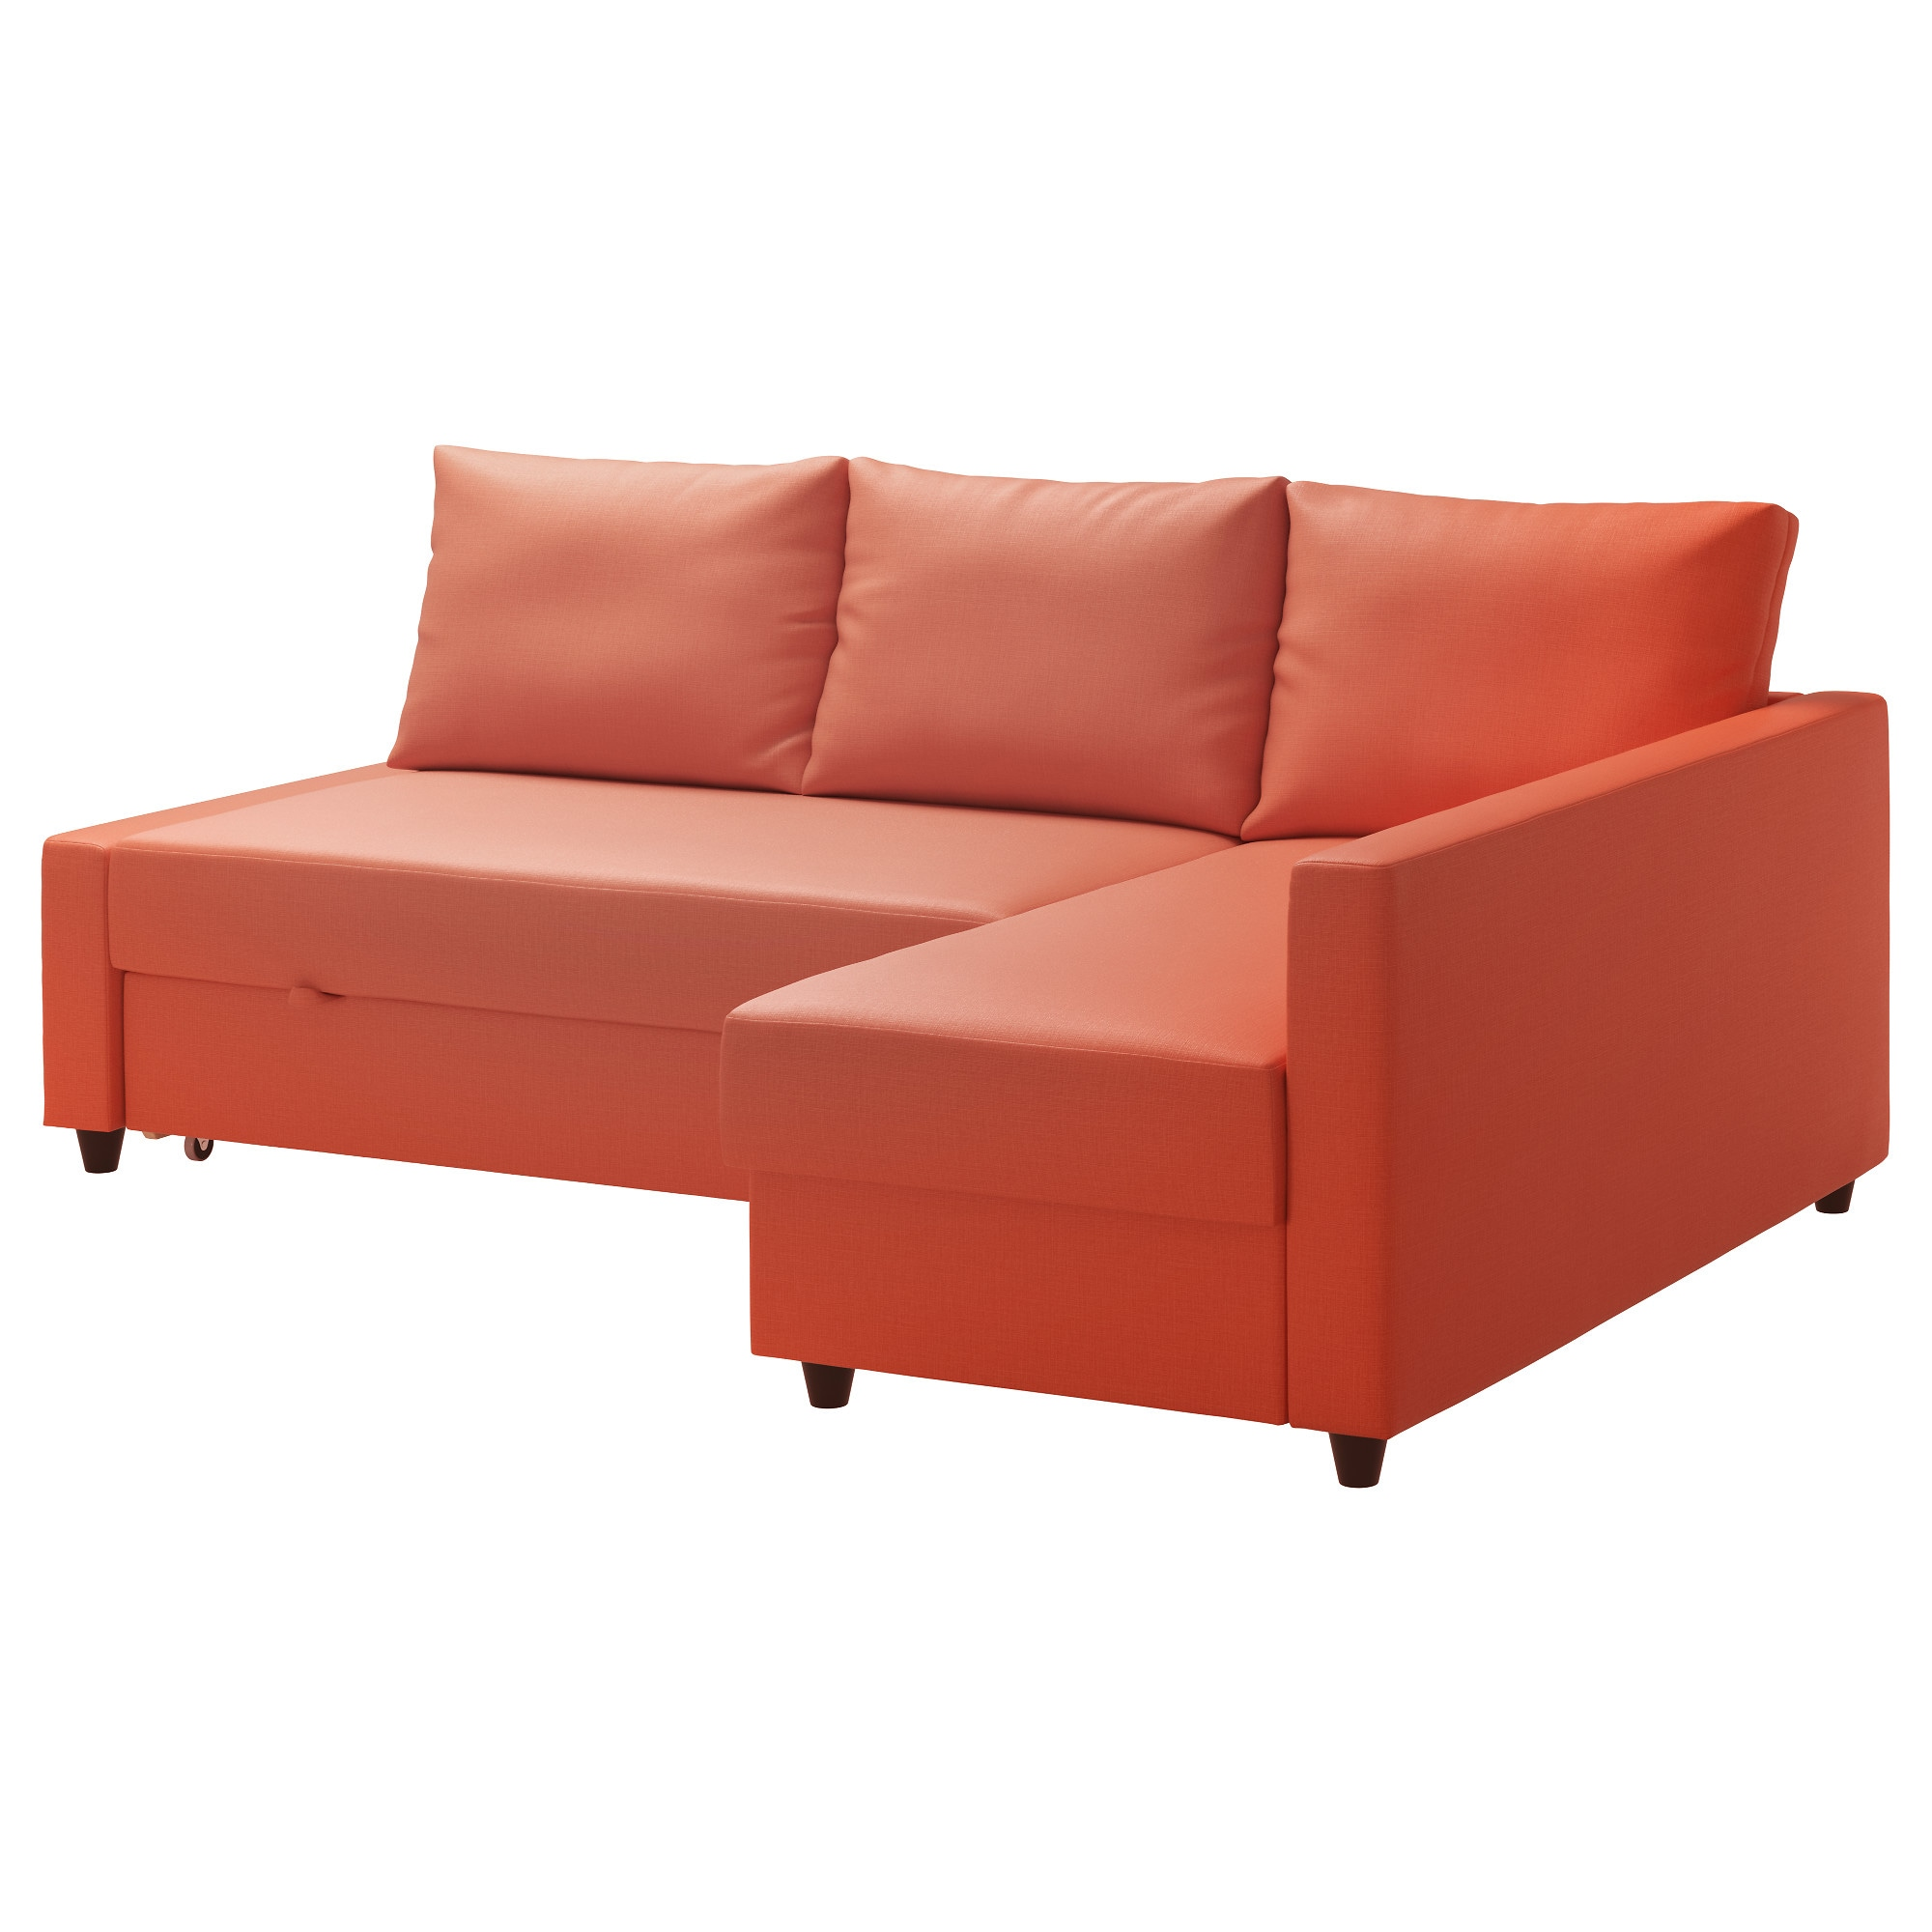 inter ikea systems bv 1999 2018 privacy policy responsible disclosure - Chaise Orange